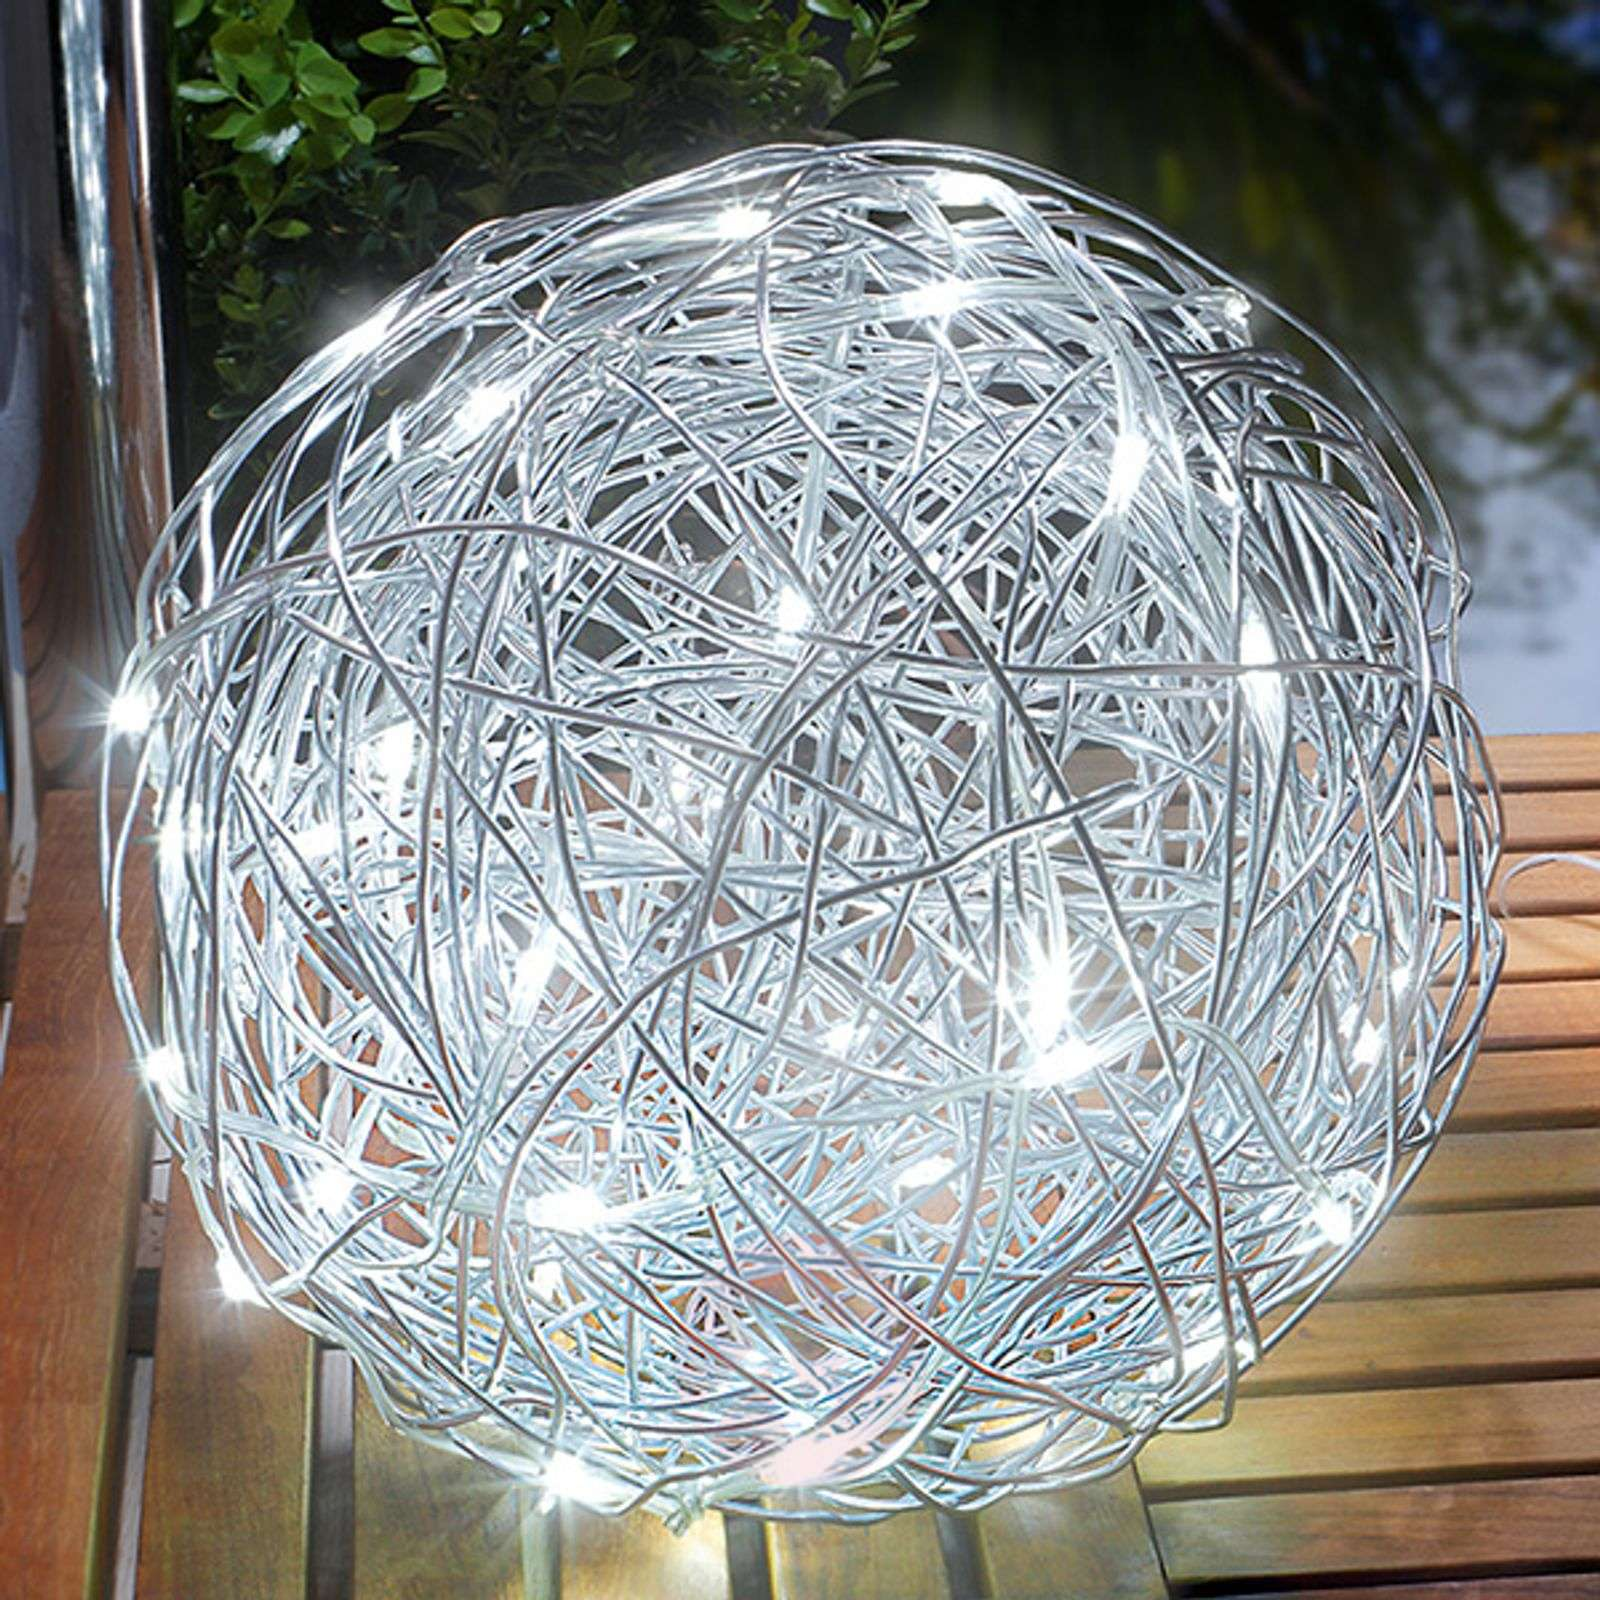 Outdoor light LED solar aluminium wire ball | Lights.co.uk